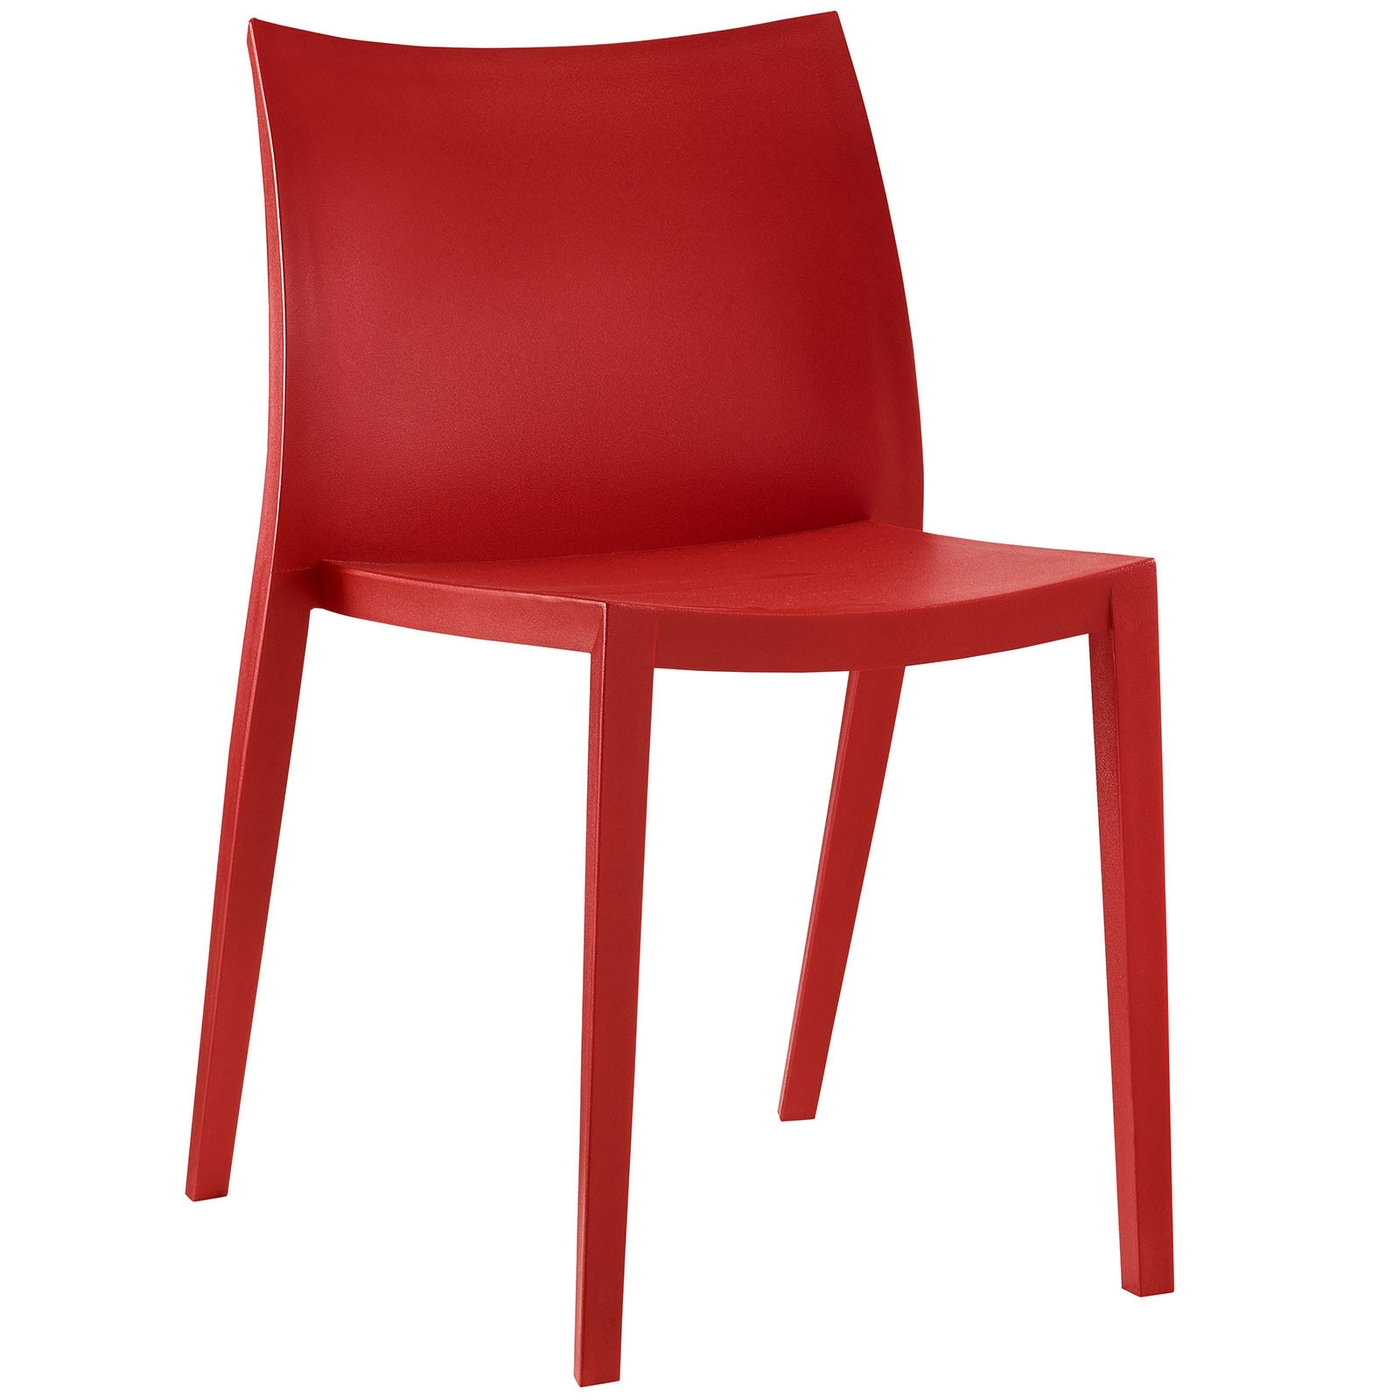 gallant contemporary plastic dining side chair red ForContemporary Plastic Dining Chairs